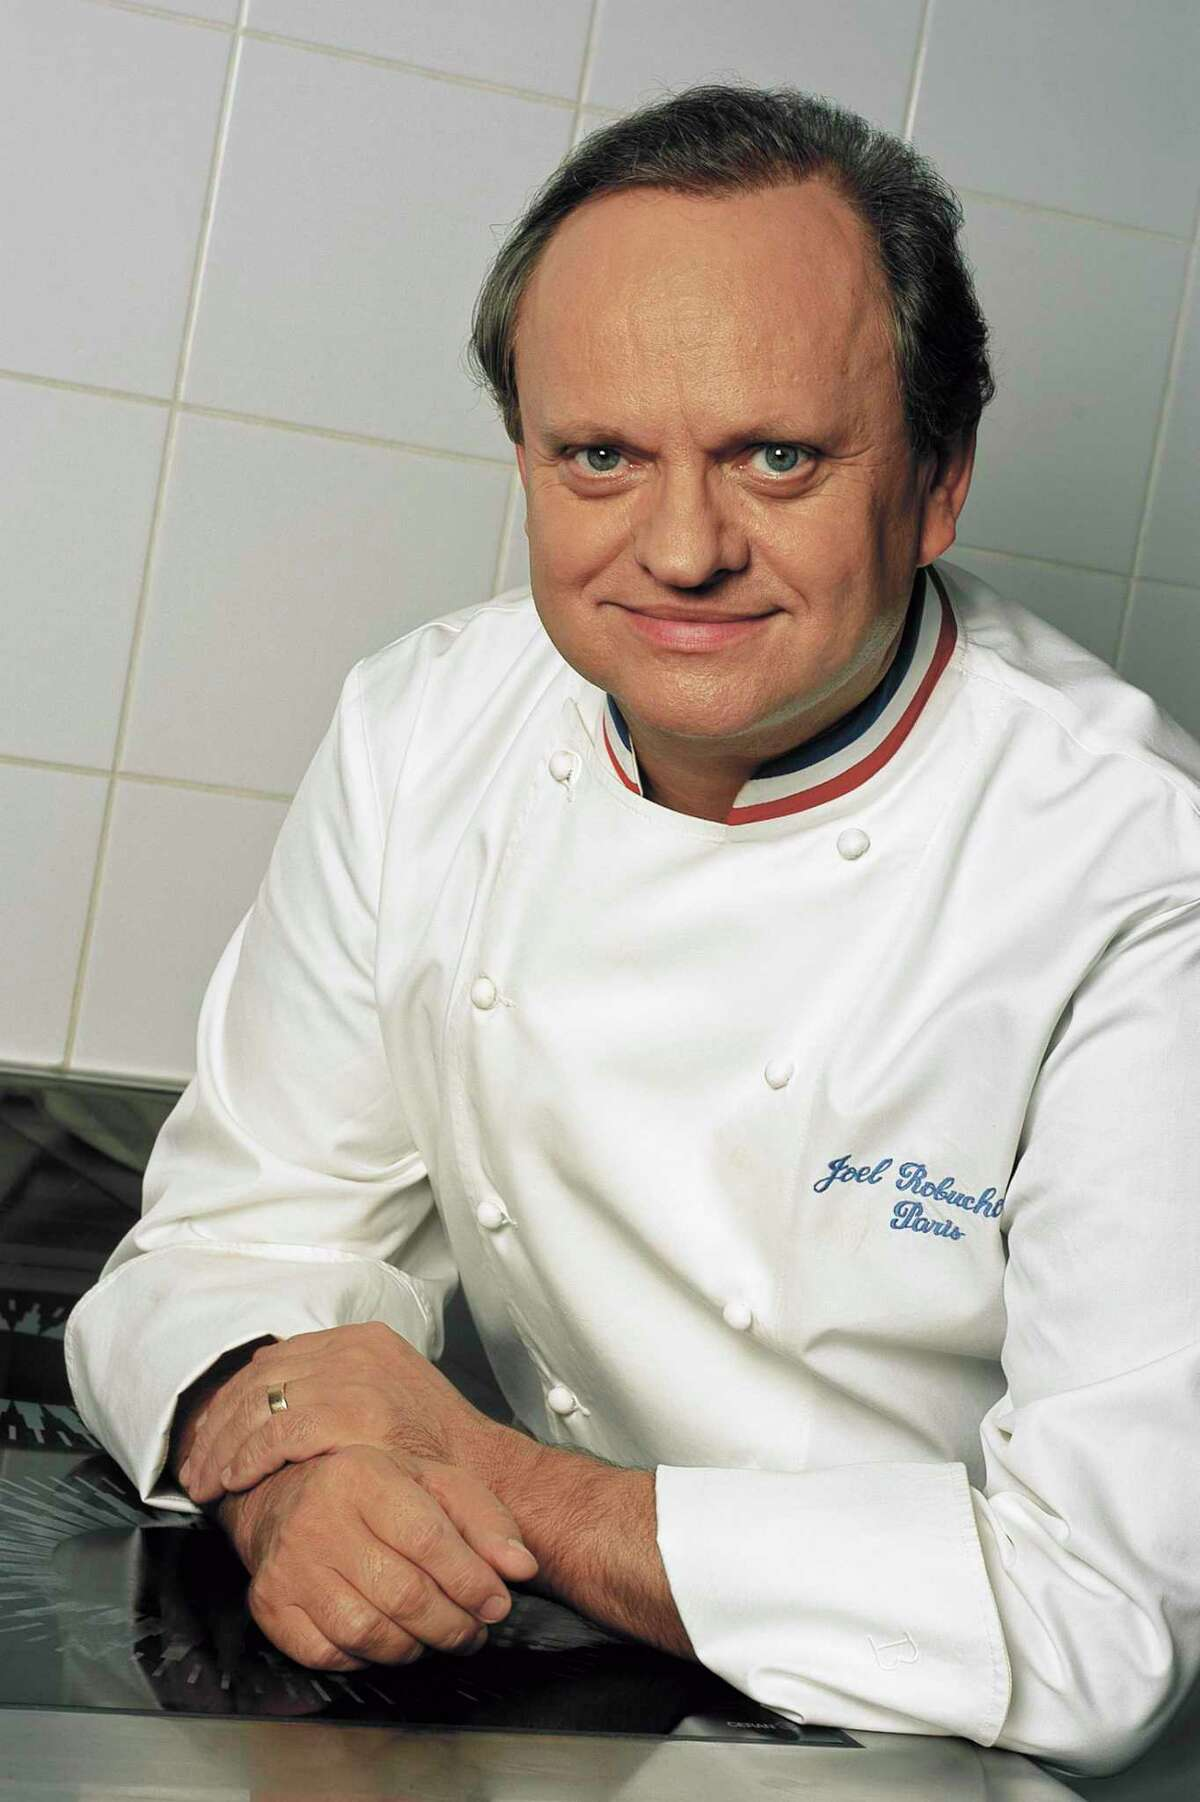 La Table and Invest Hospitality have created Hospitality for Houston initiative to help the hospitality industry in the country donate to Harvey relief efforts in Houston. Among the first to donate was chef Joel Robuchon.